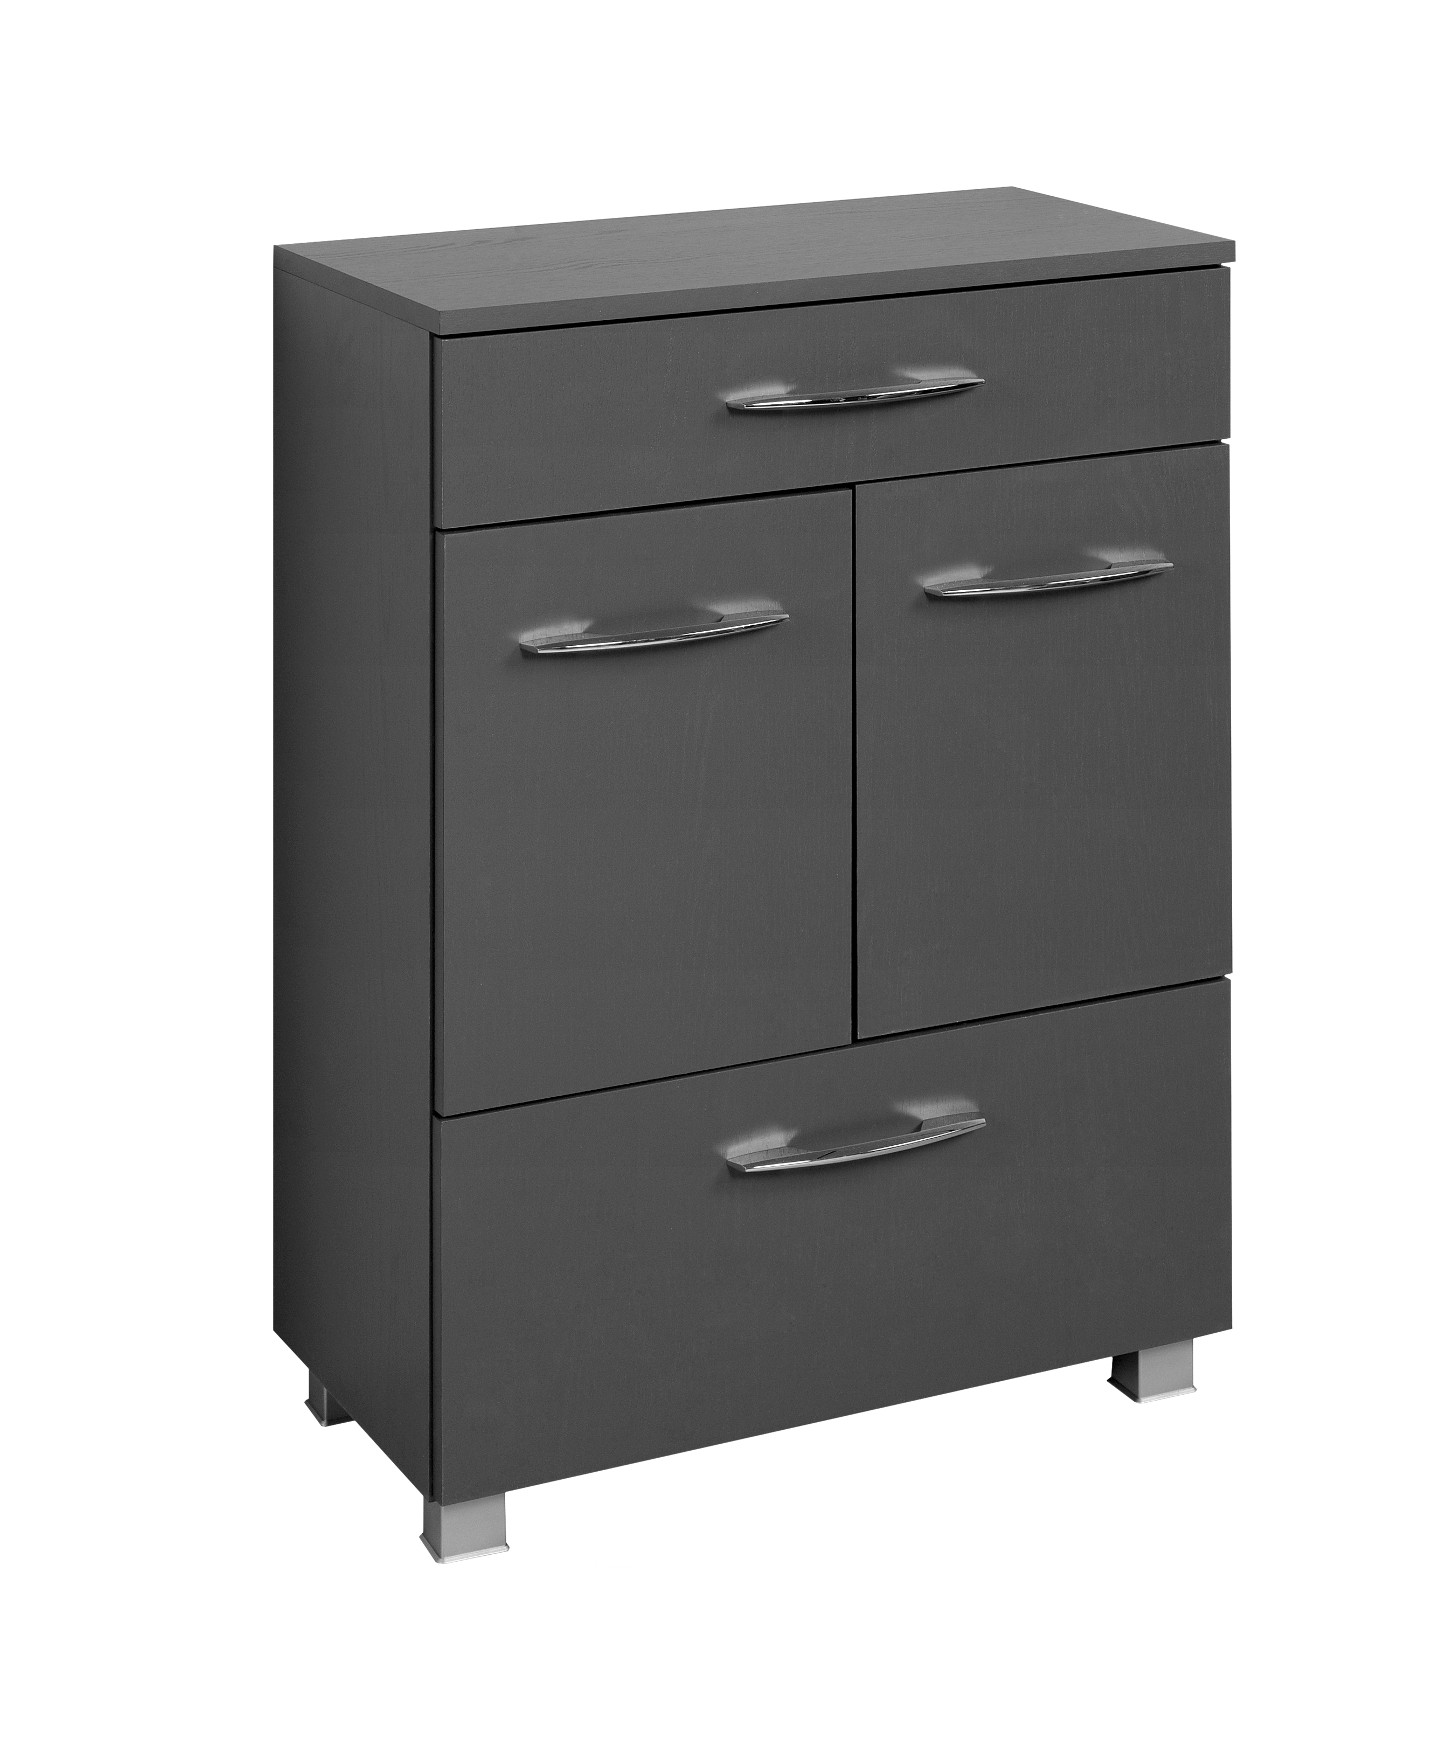 bad unterschrank portofino 2 t rig 1 schublade 1. Black Bedroom Furniture Sets. Home Design Ideas